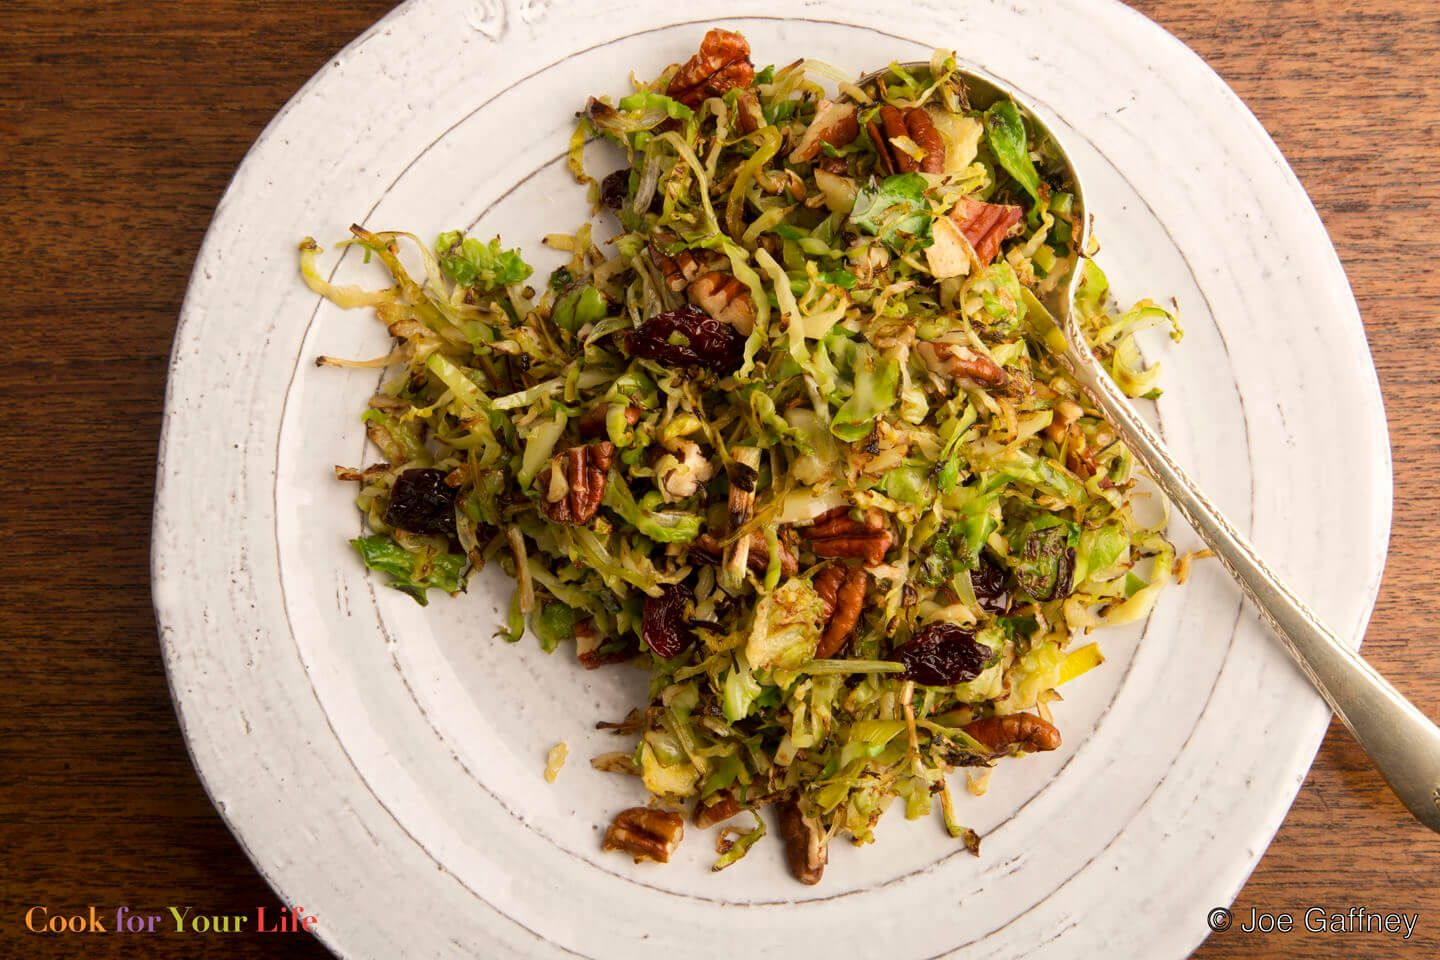 Brussels sprouts with pecans dried cherries brussel